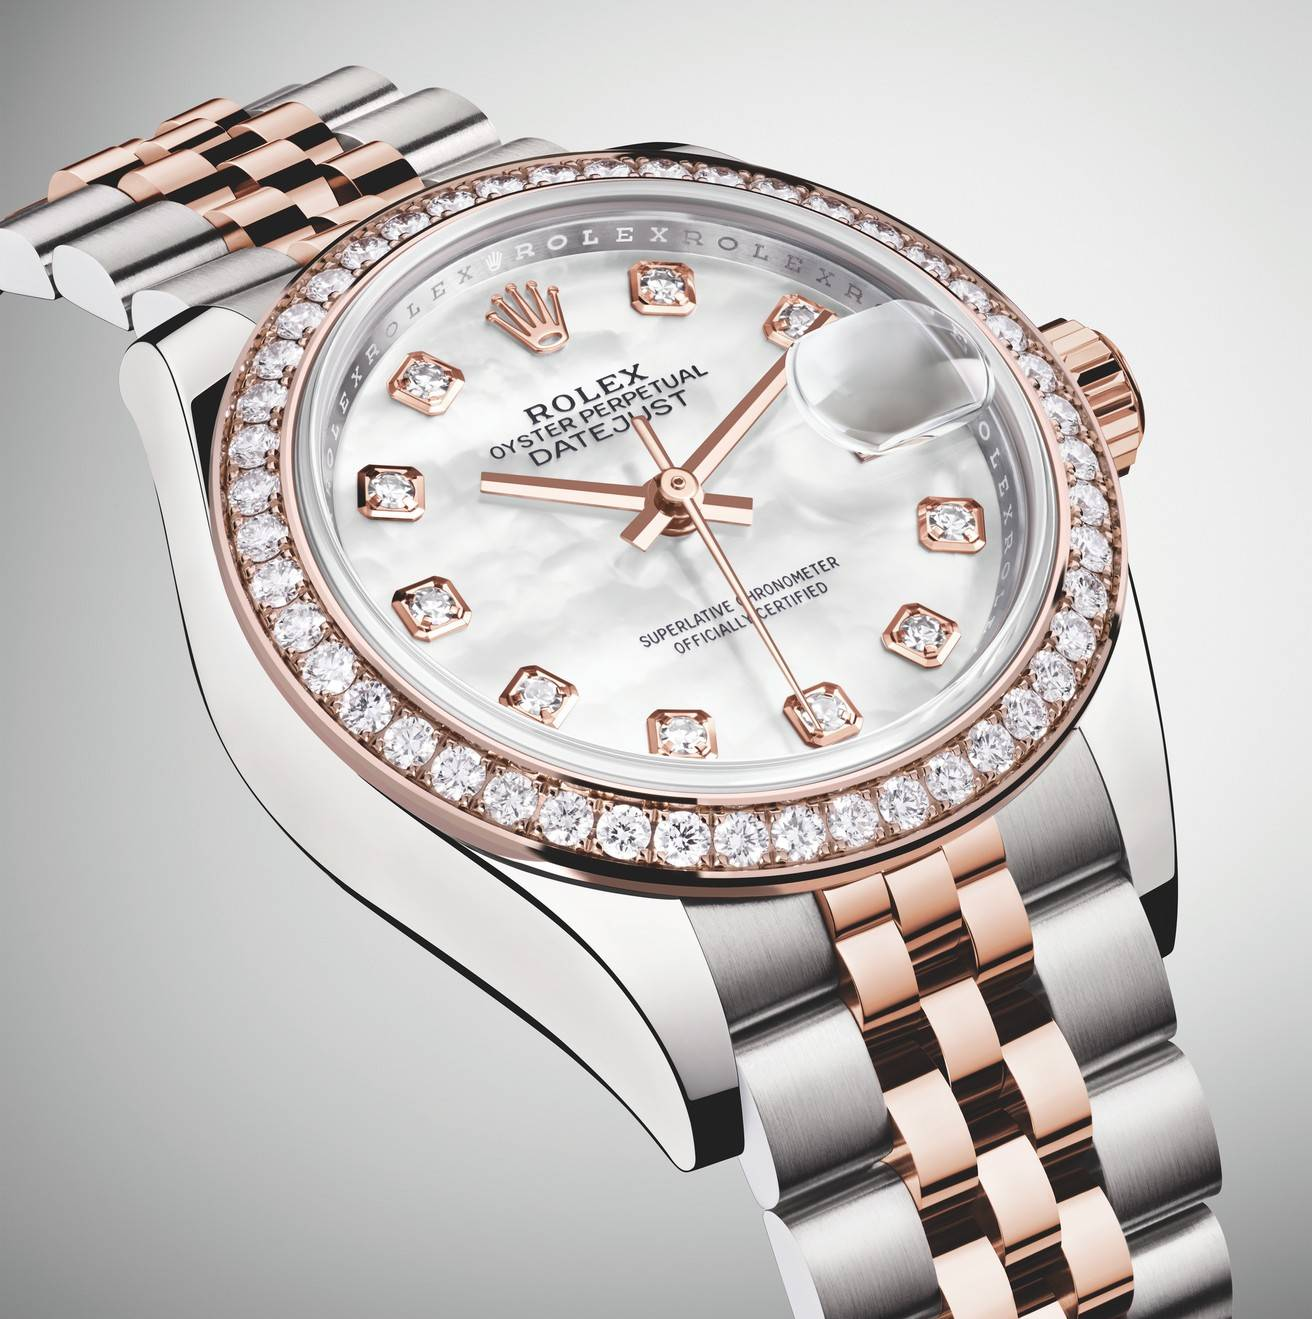 rolex lady datejust 28 montre femme par excellence. Black Bedroom Furniture Sets. Home Design Ideas